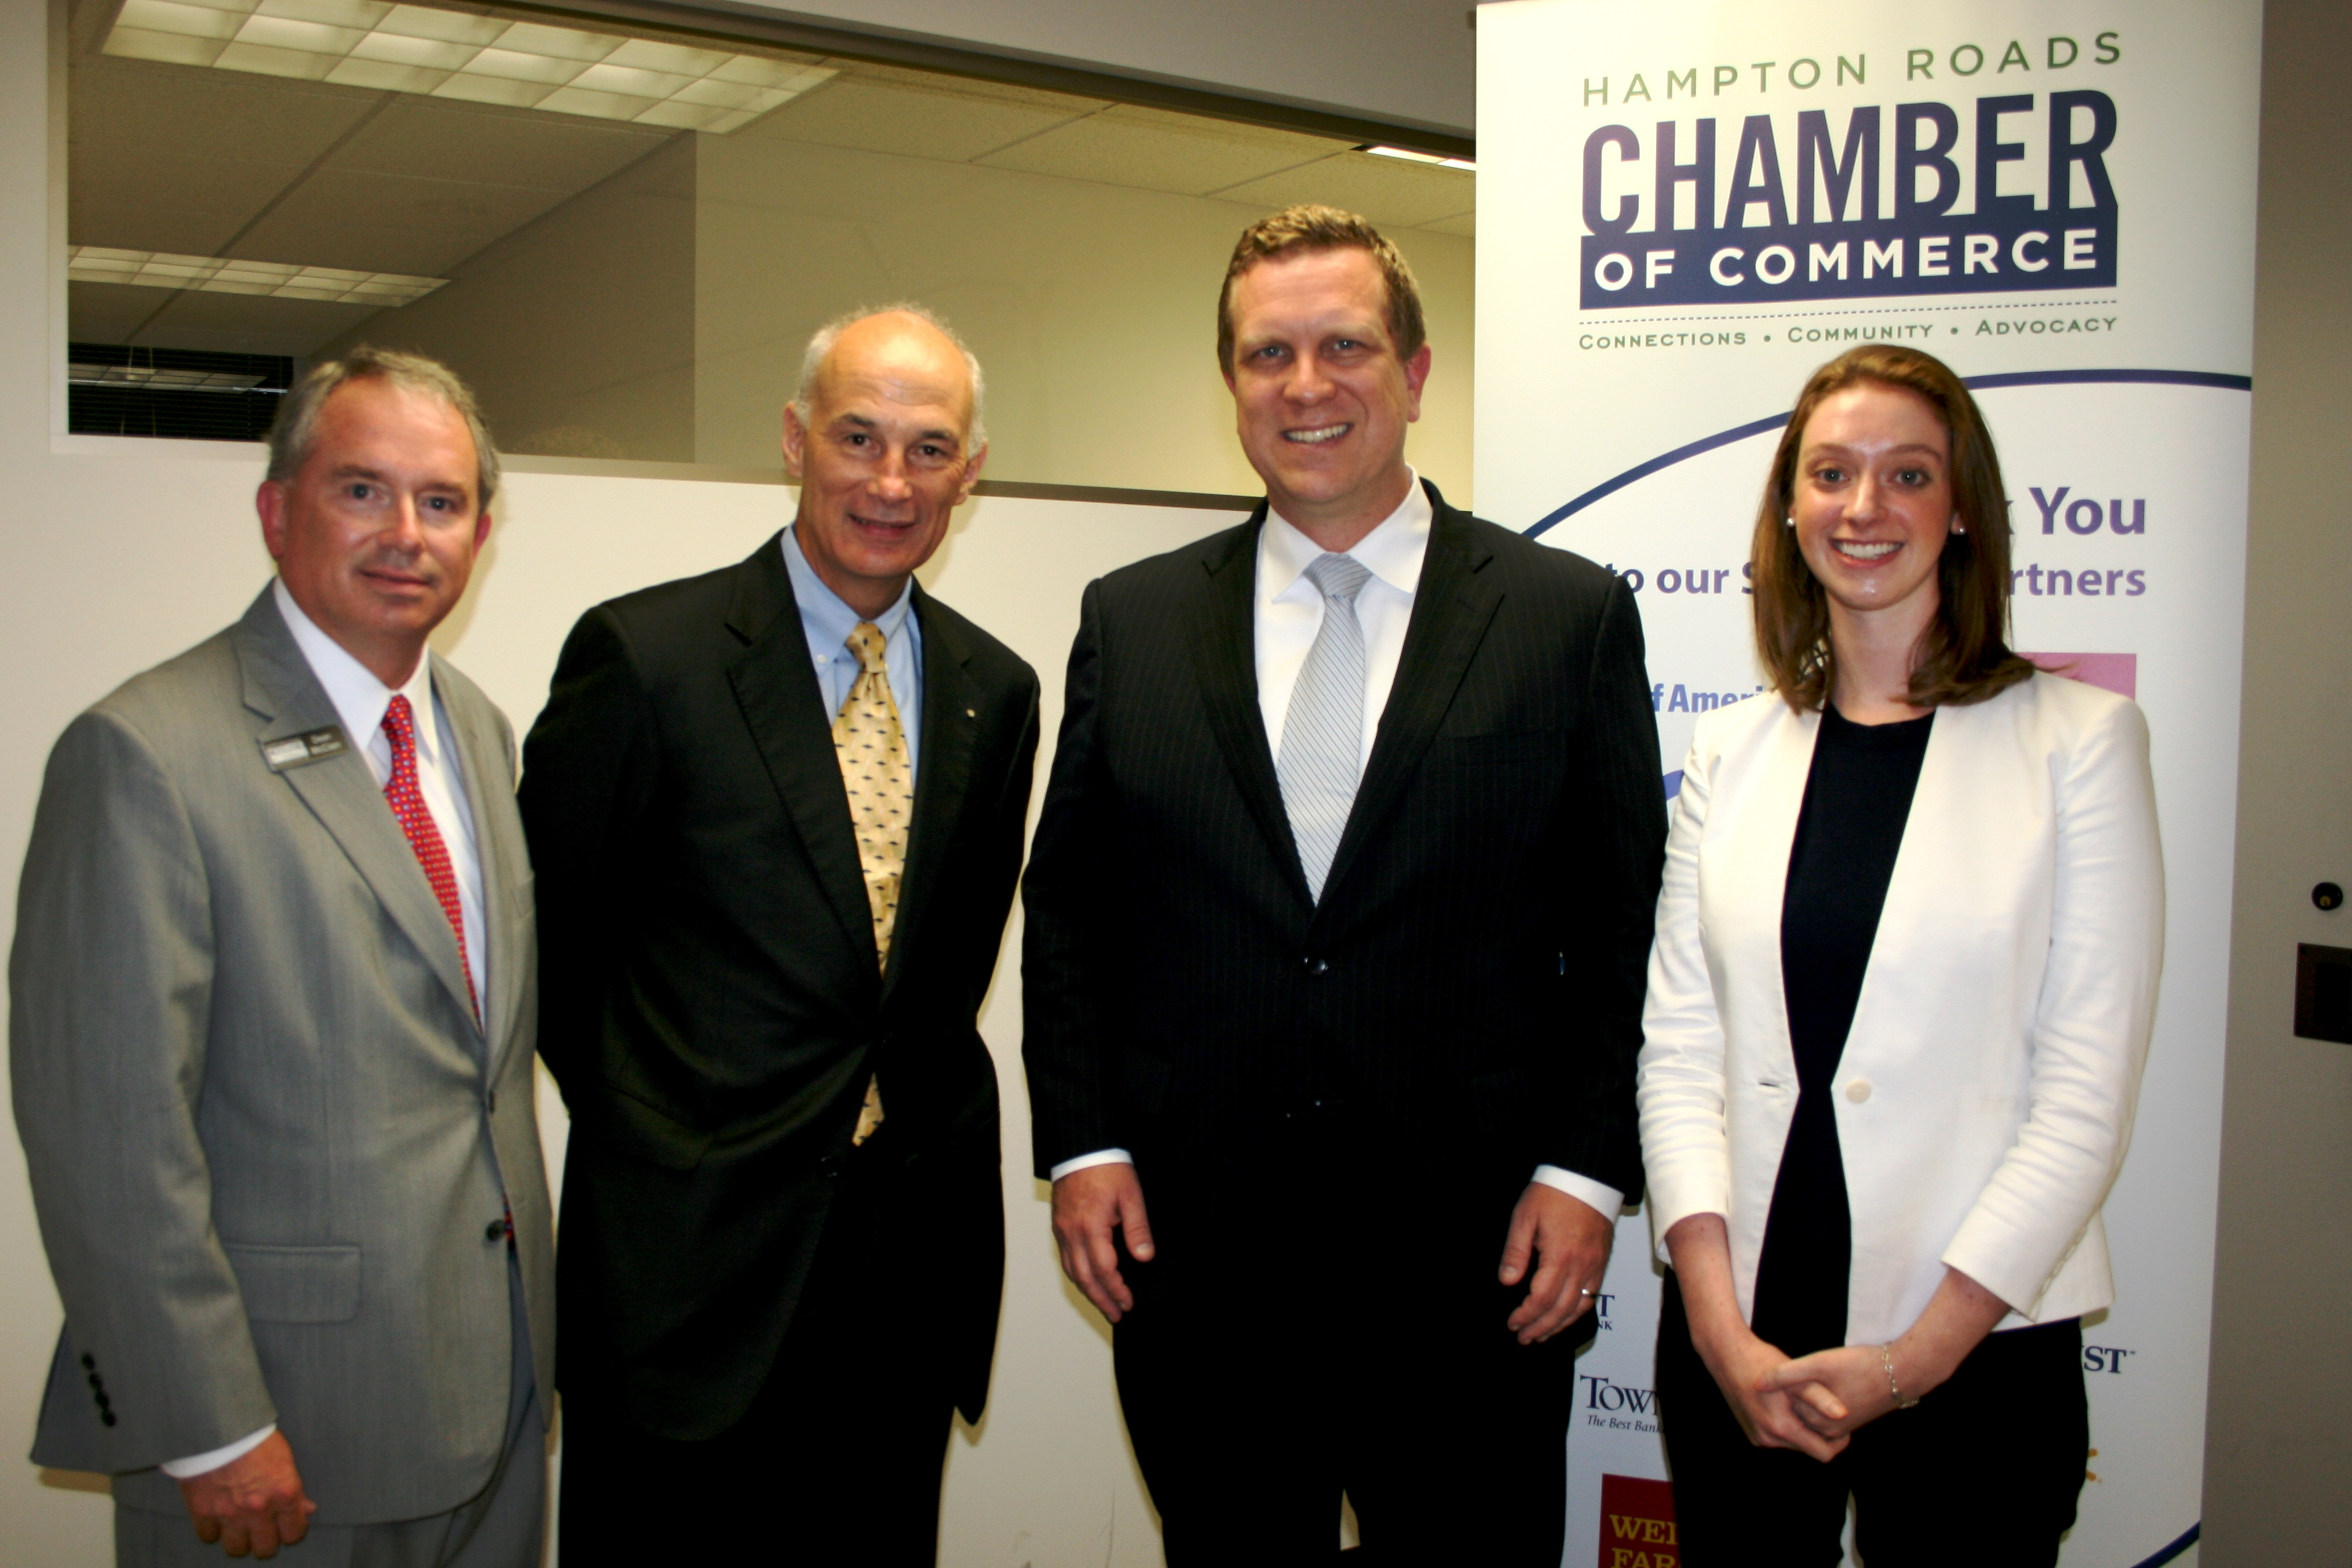 (from left) Dean McClain, Municipal Affairs Director, Hampton Roads Chamber of Commerce, Bill Holloran, Chair, Hampton Roads Political Action Committee, David Danielson, Assistant Secretary for Energy Efficiency and Renewable Energy, U.S. Department of Energy and Rachel Harvey, Press Secretary, Business Forward